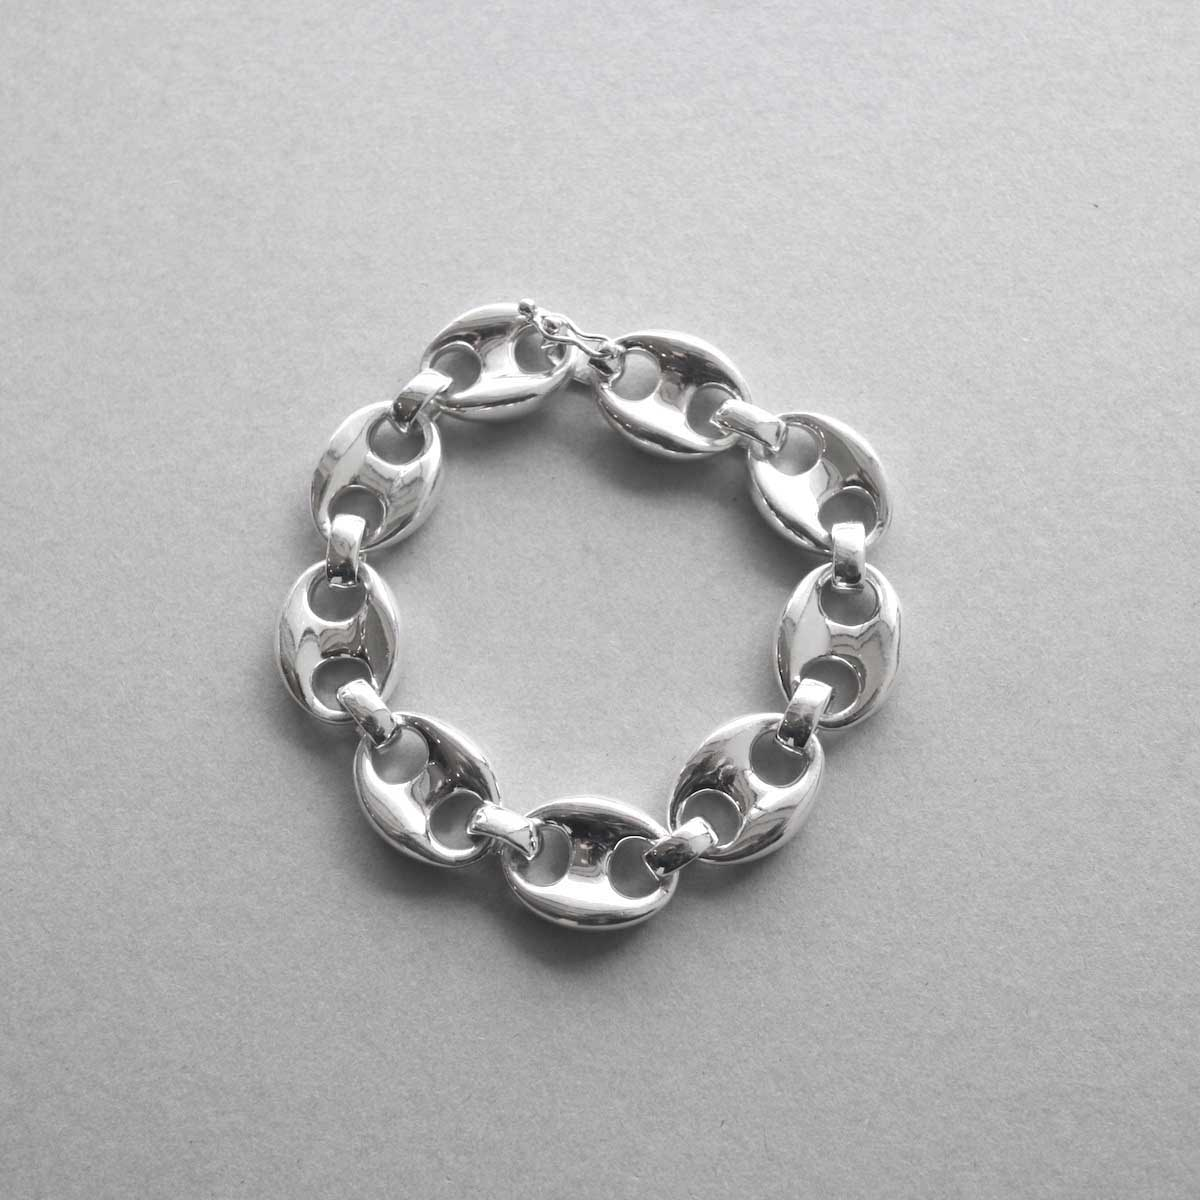 FIFTH GENERAL STORE / Special-002 Silver Chain Bracelet (14mm)